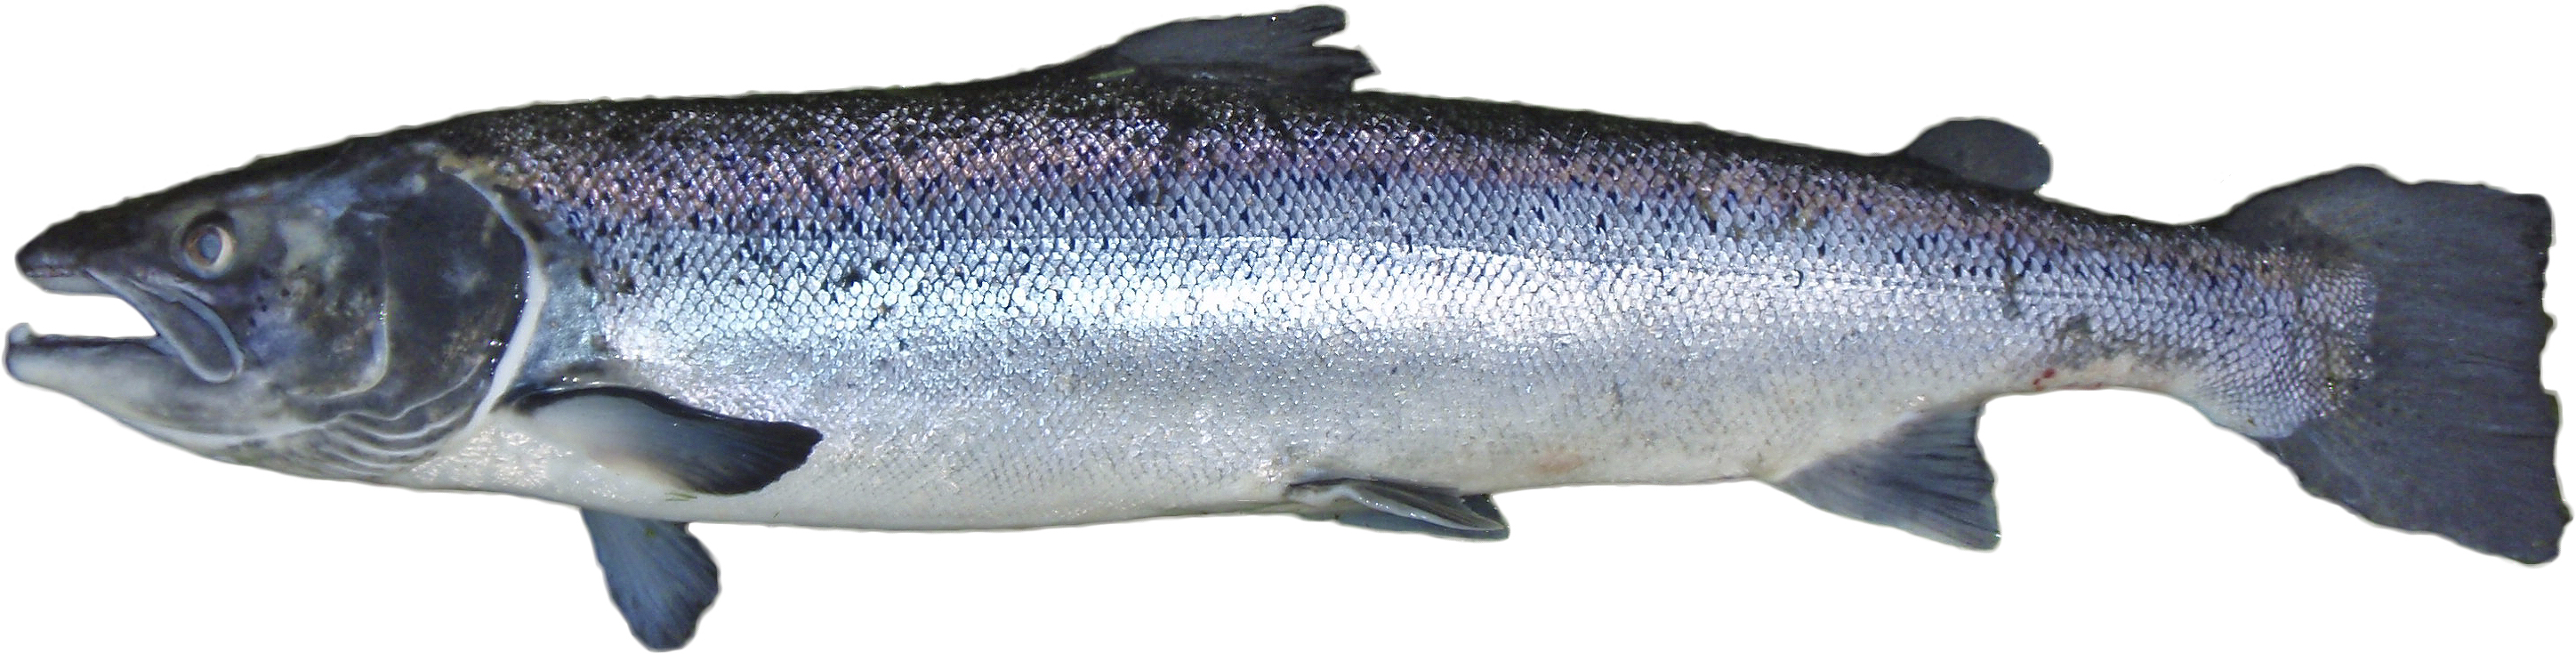 Png salmon fish transparent salmon fish png images pluspng for Salmon fish images